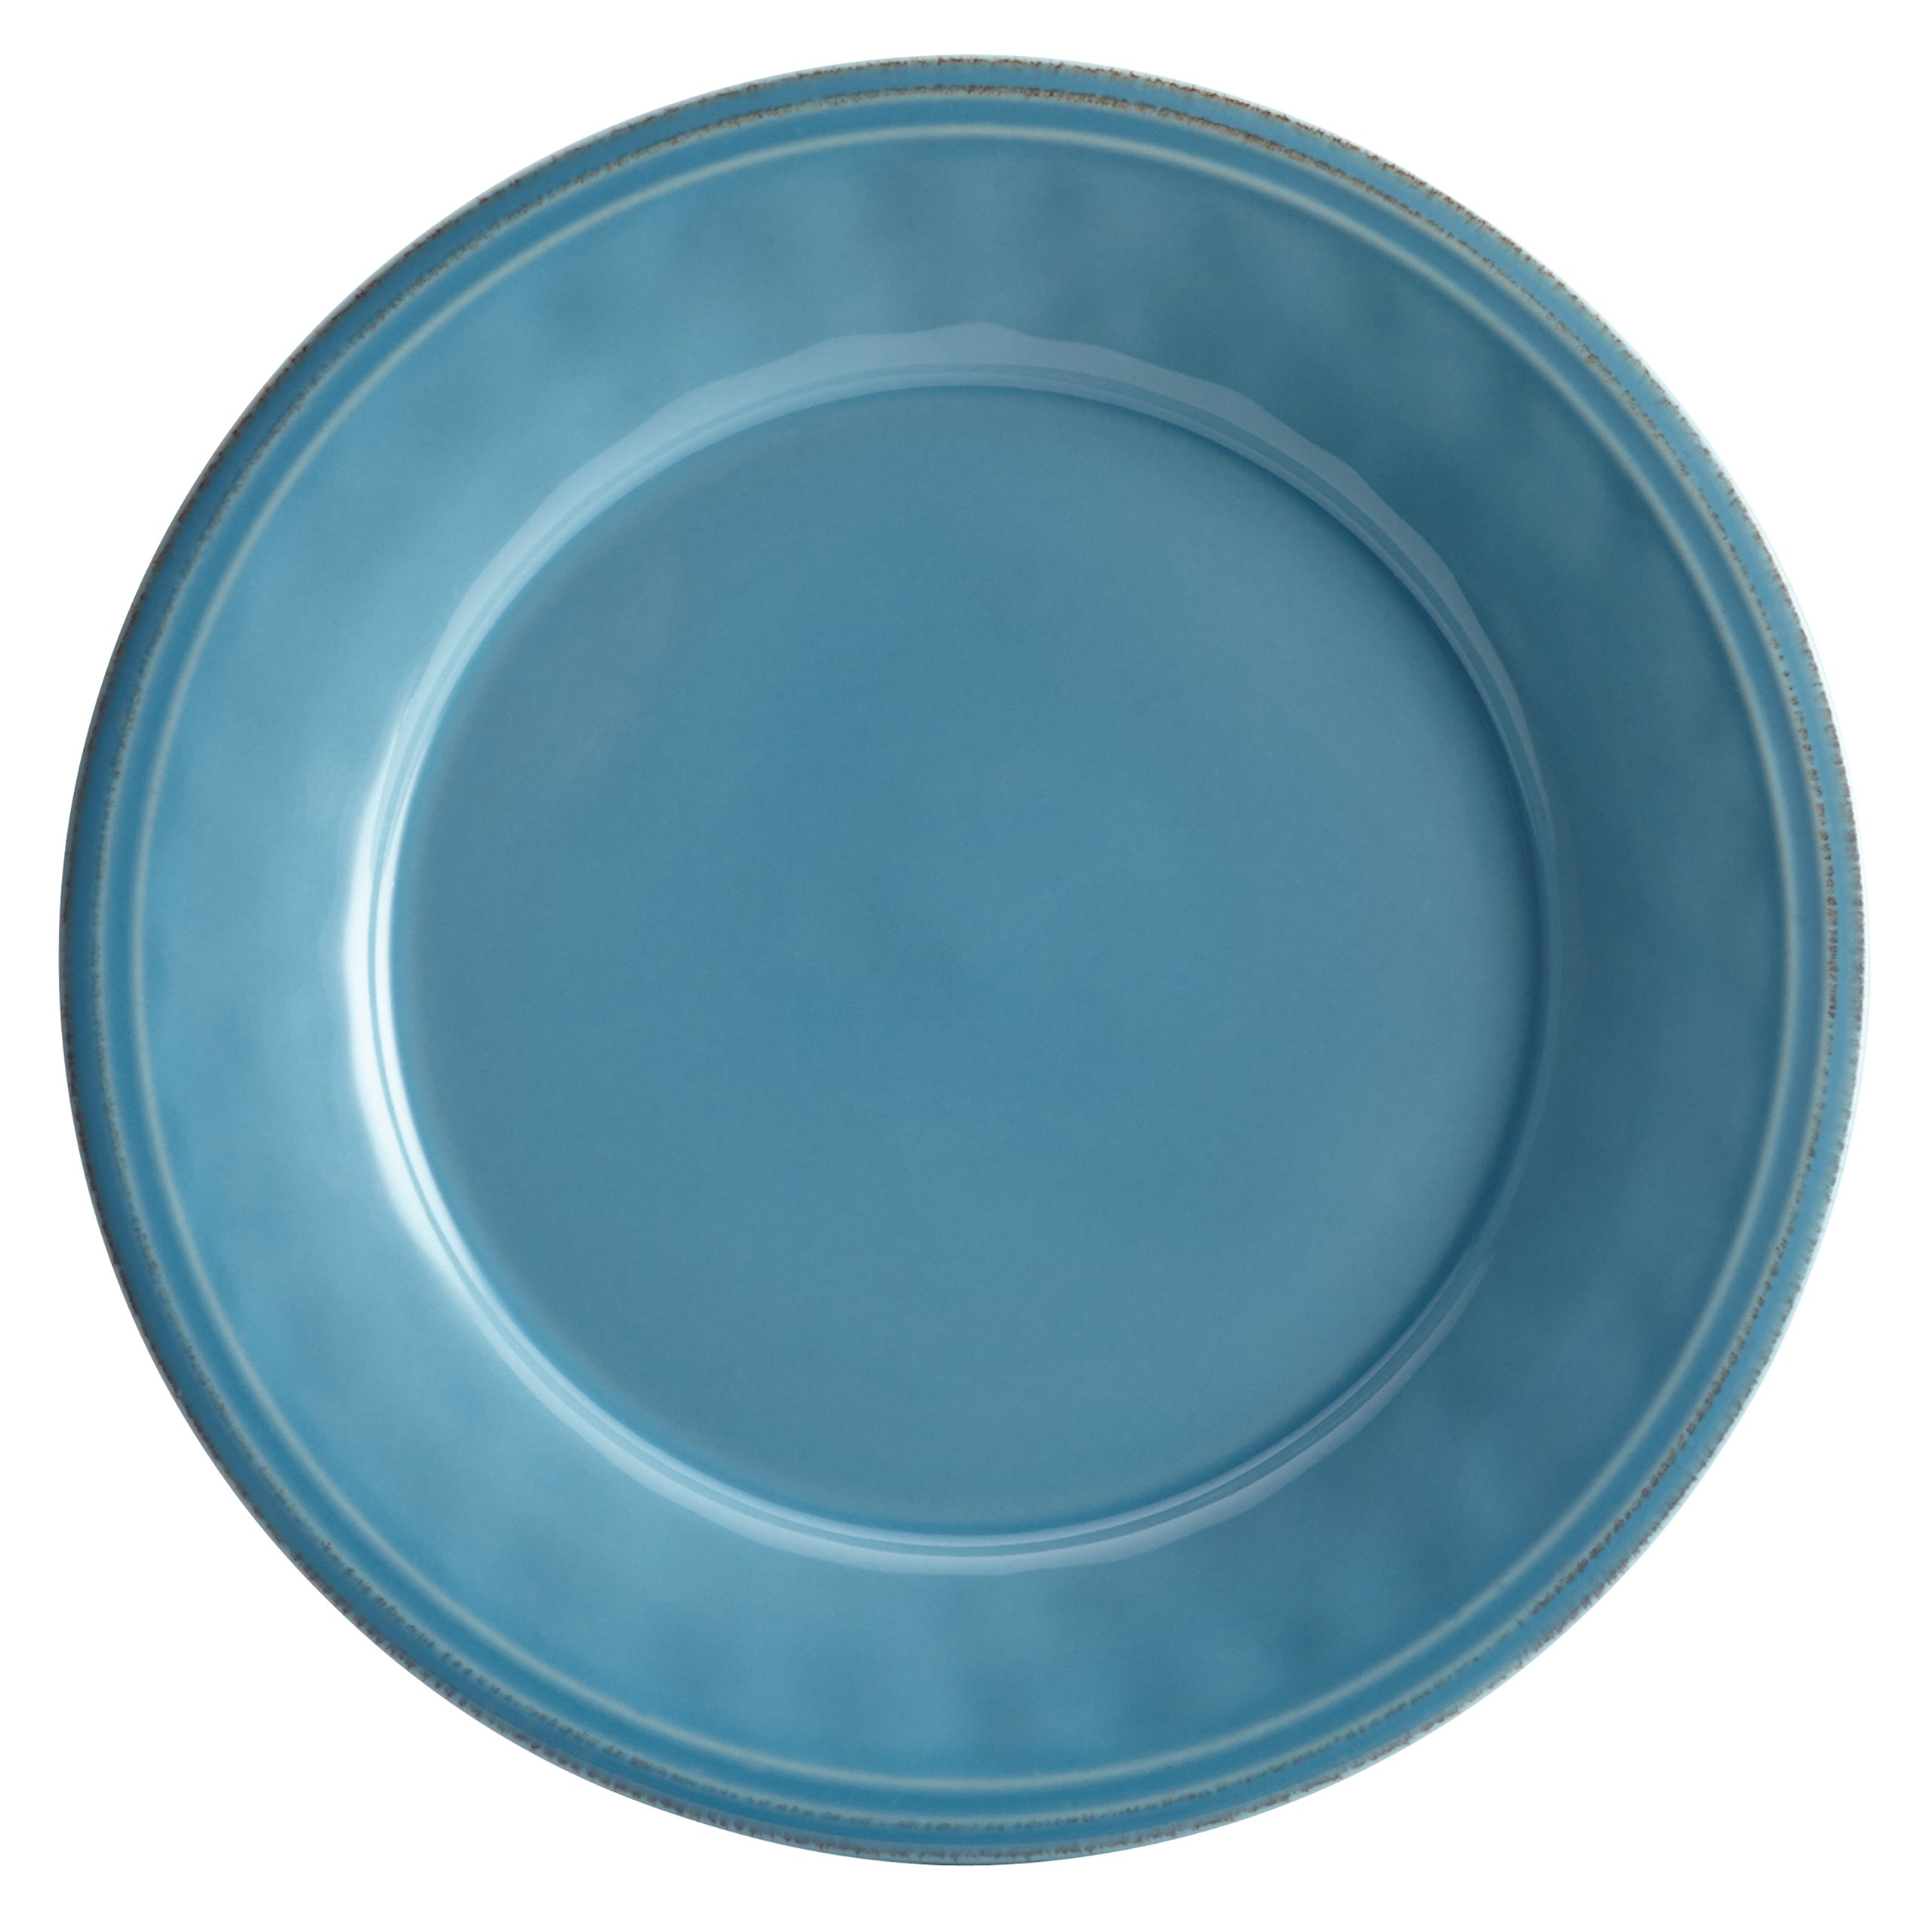 Rachael Ray Cucina Dinnerware 16-Piece Stoneware Dinnerware Set, Agave Blue by Rachael Ray (Image #7)